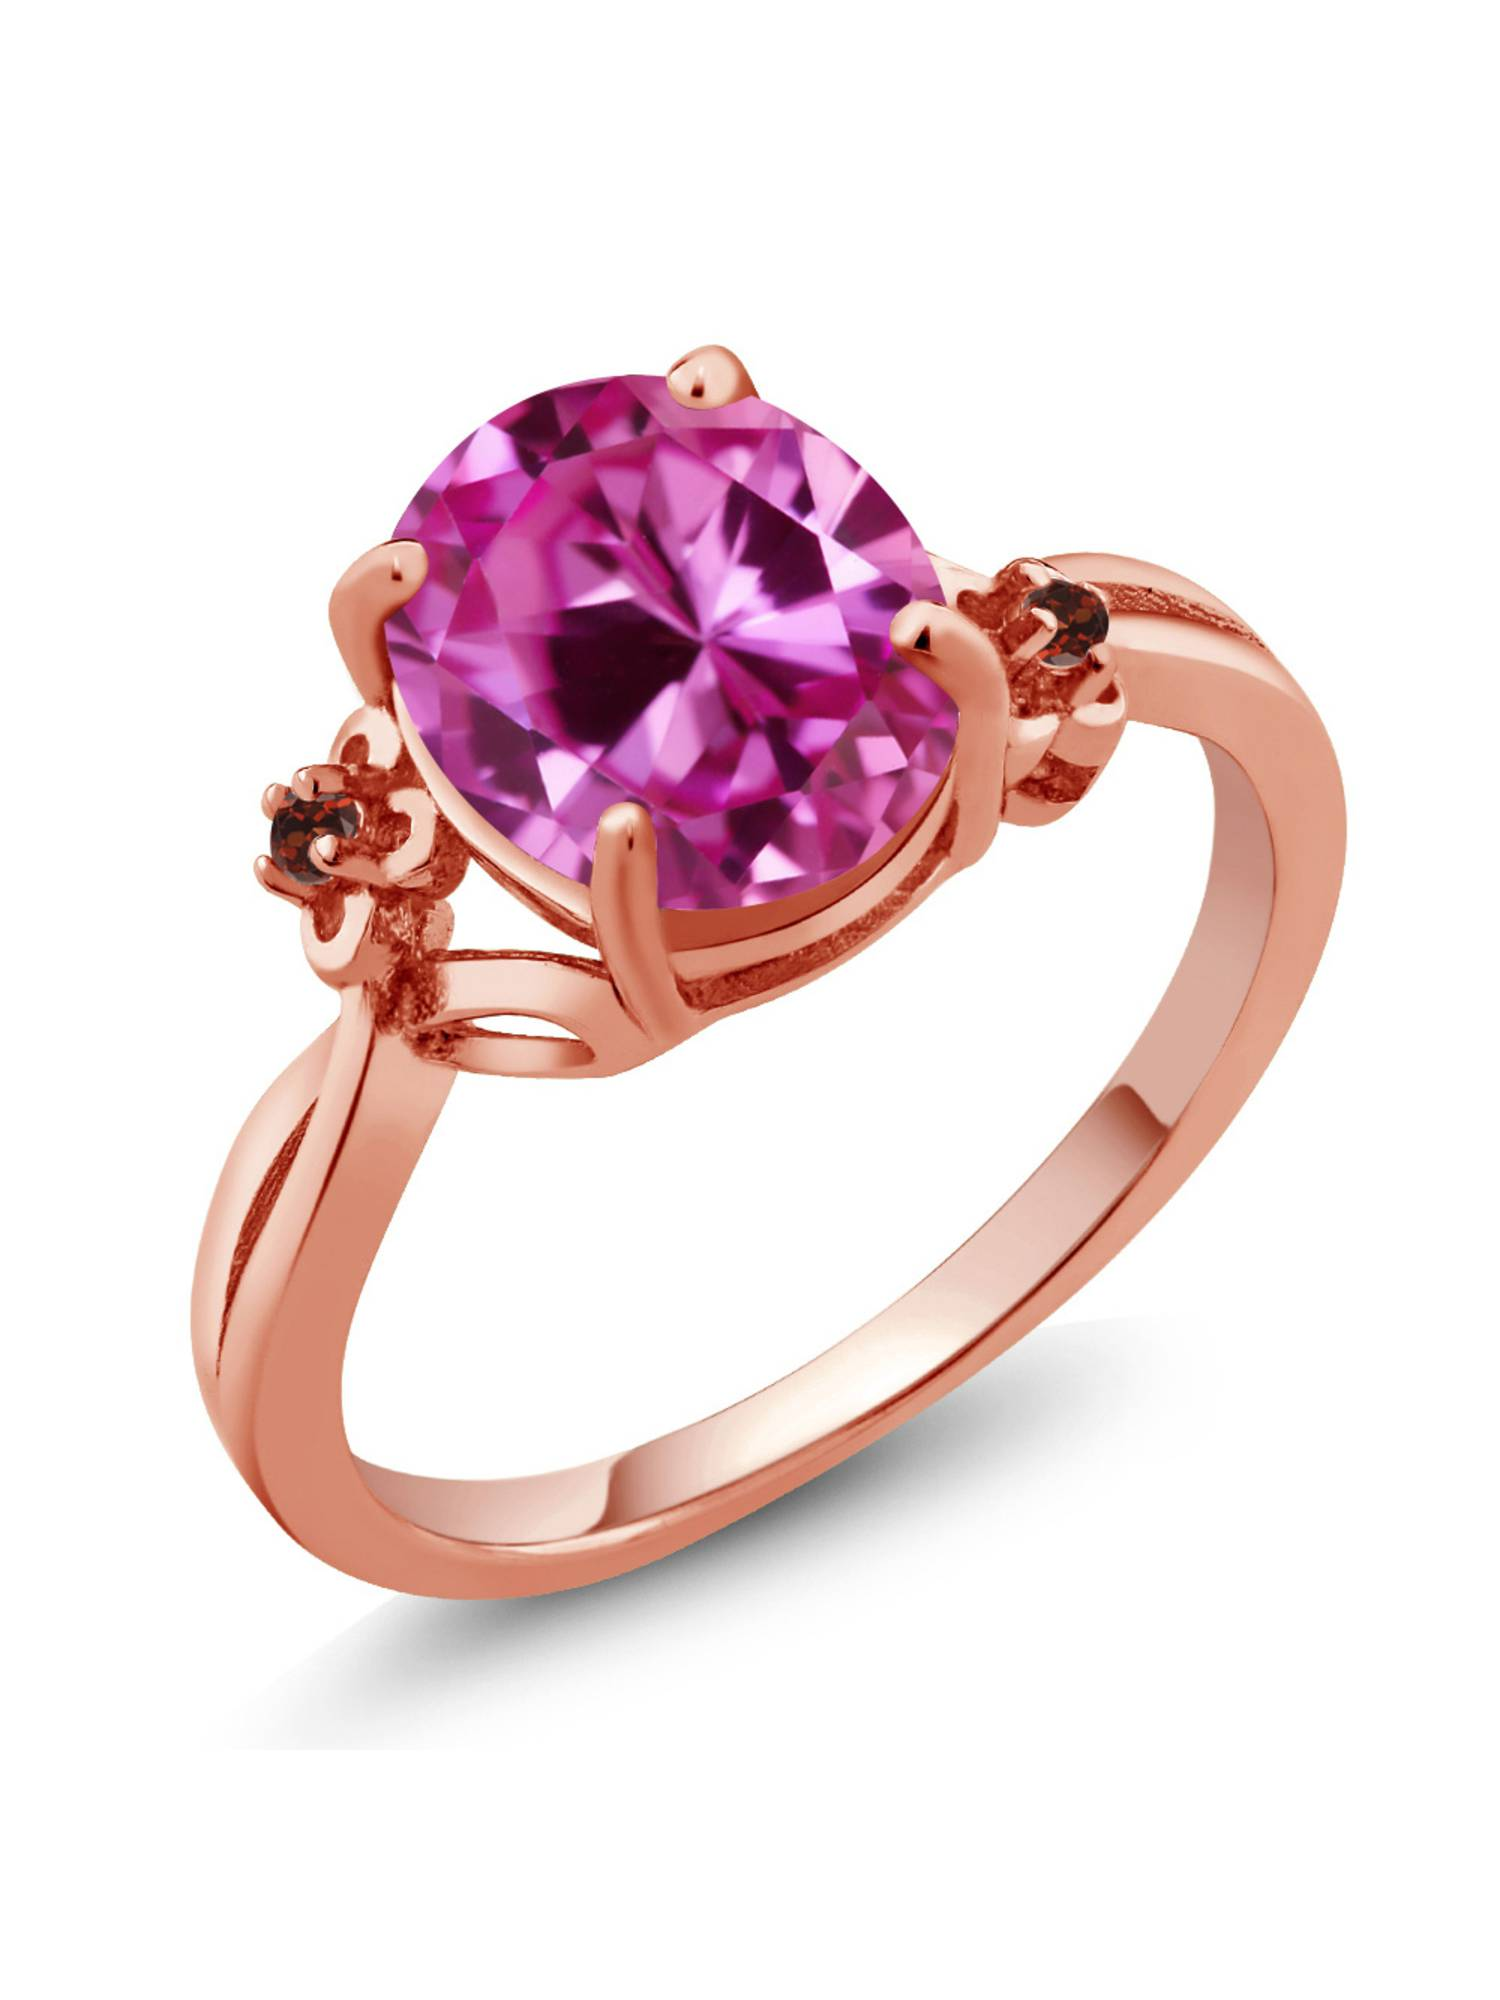 3.29 Ct Oval Pink Created Sapphire Red Garnet 14K Rose Gold Ring by